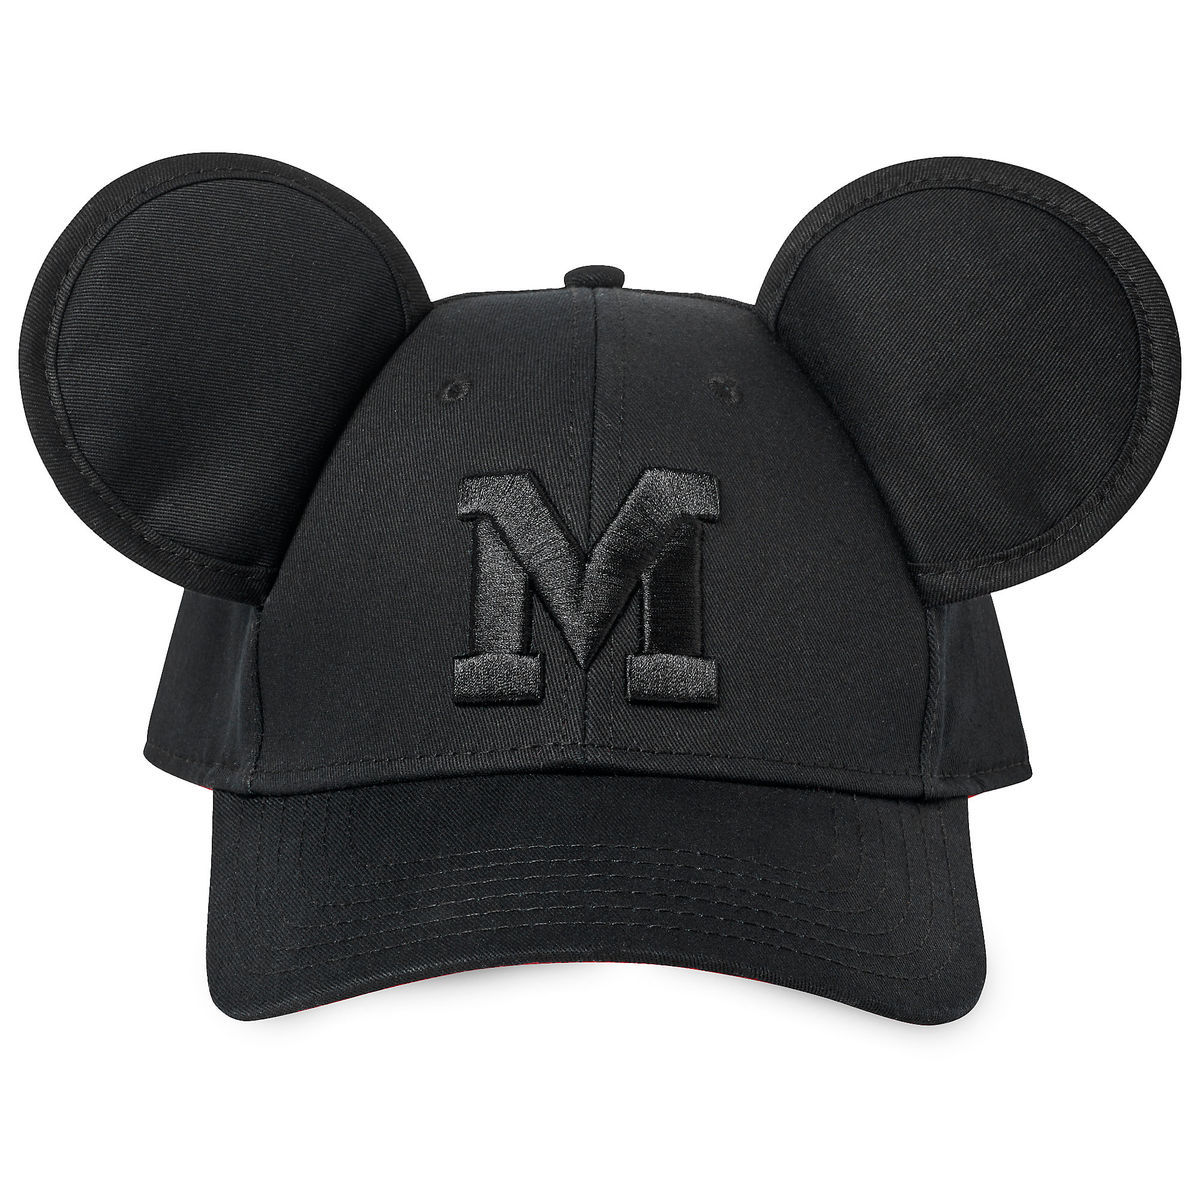 87160c5c09a Product Image of Mickey Mouse Baseball Ear Cap for Adults   1